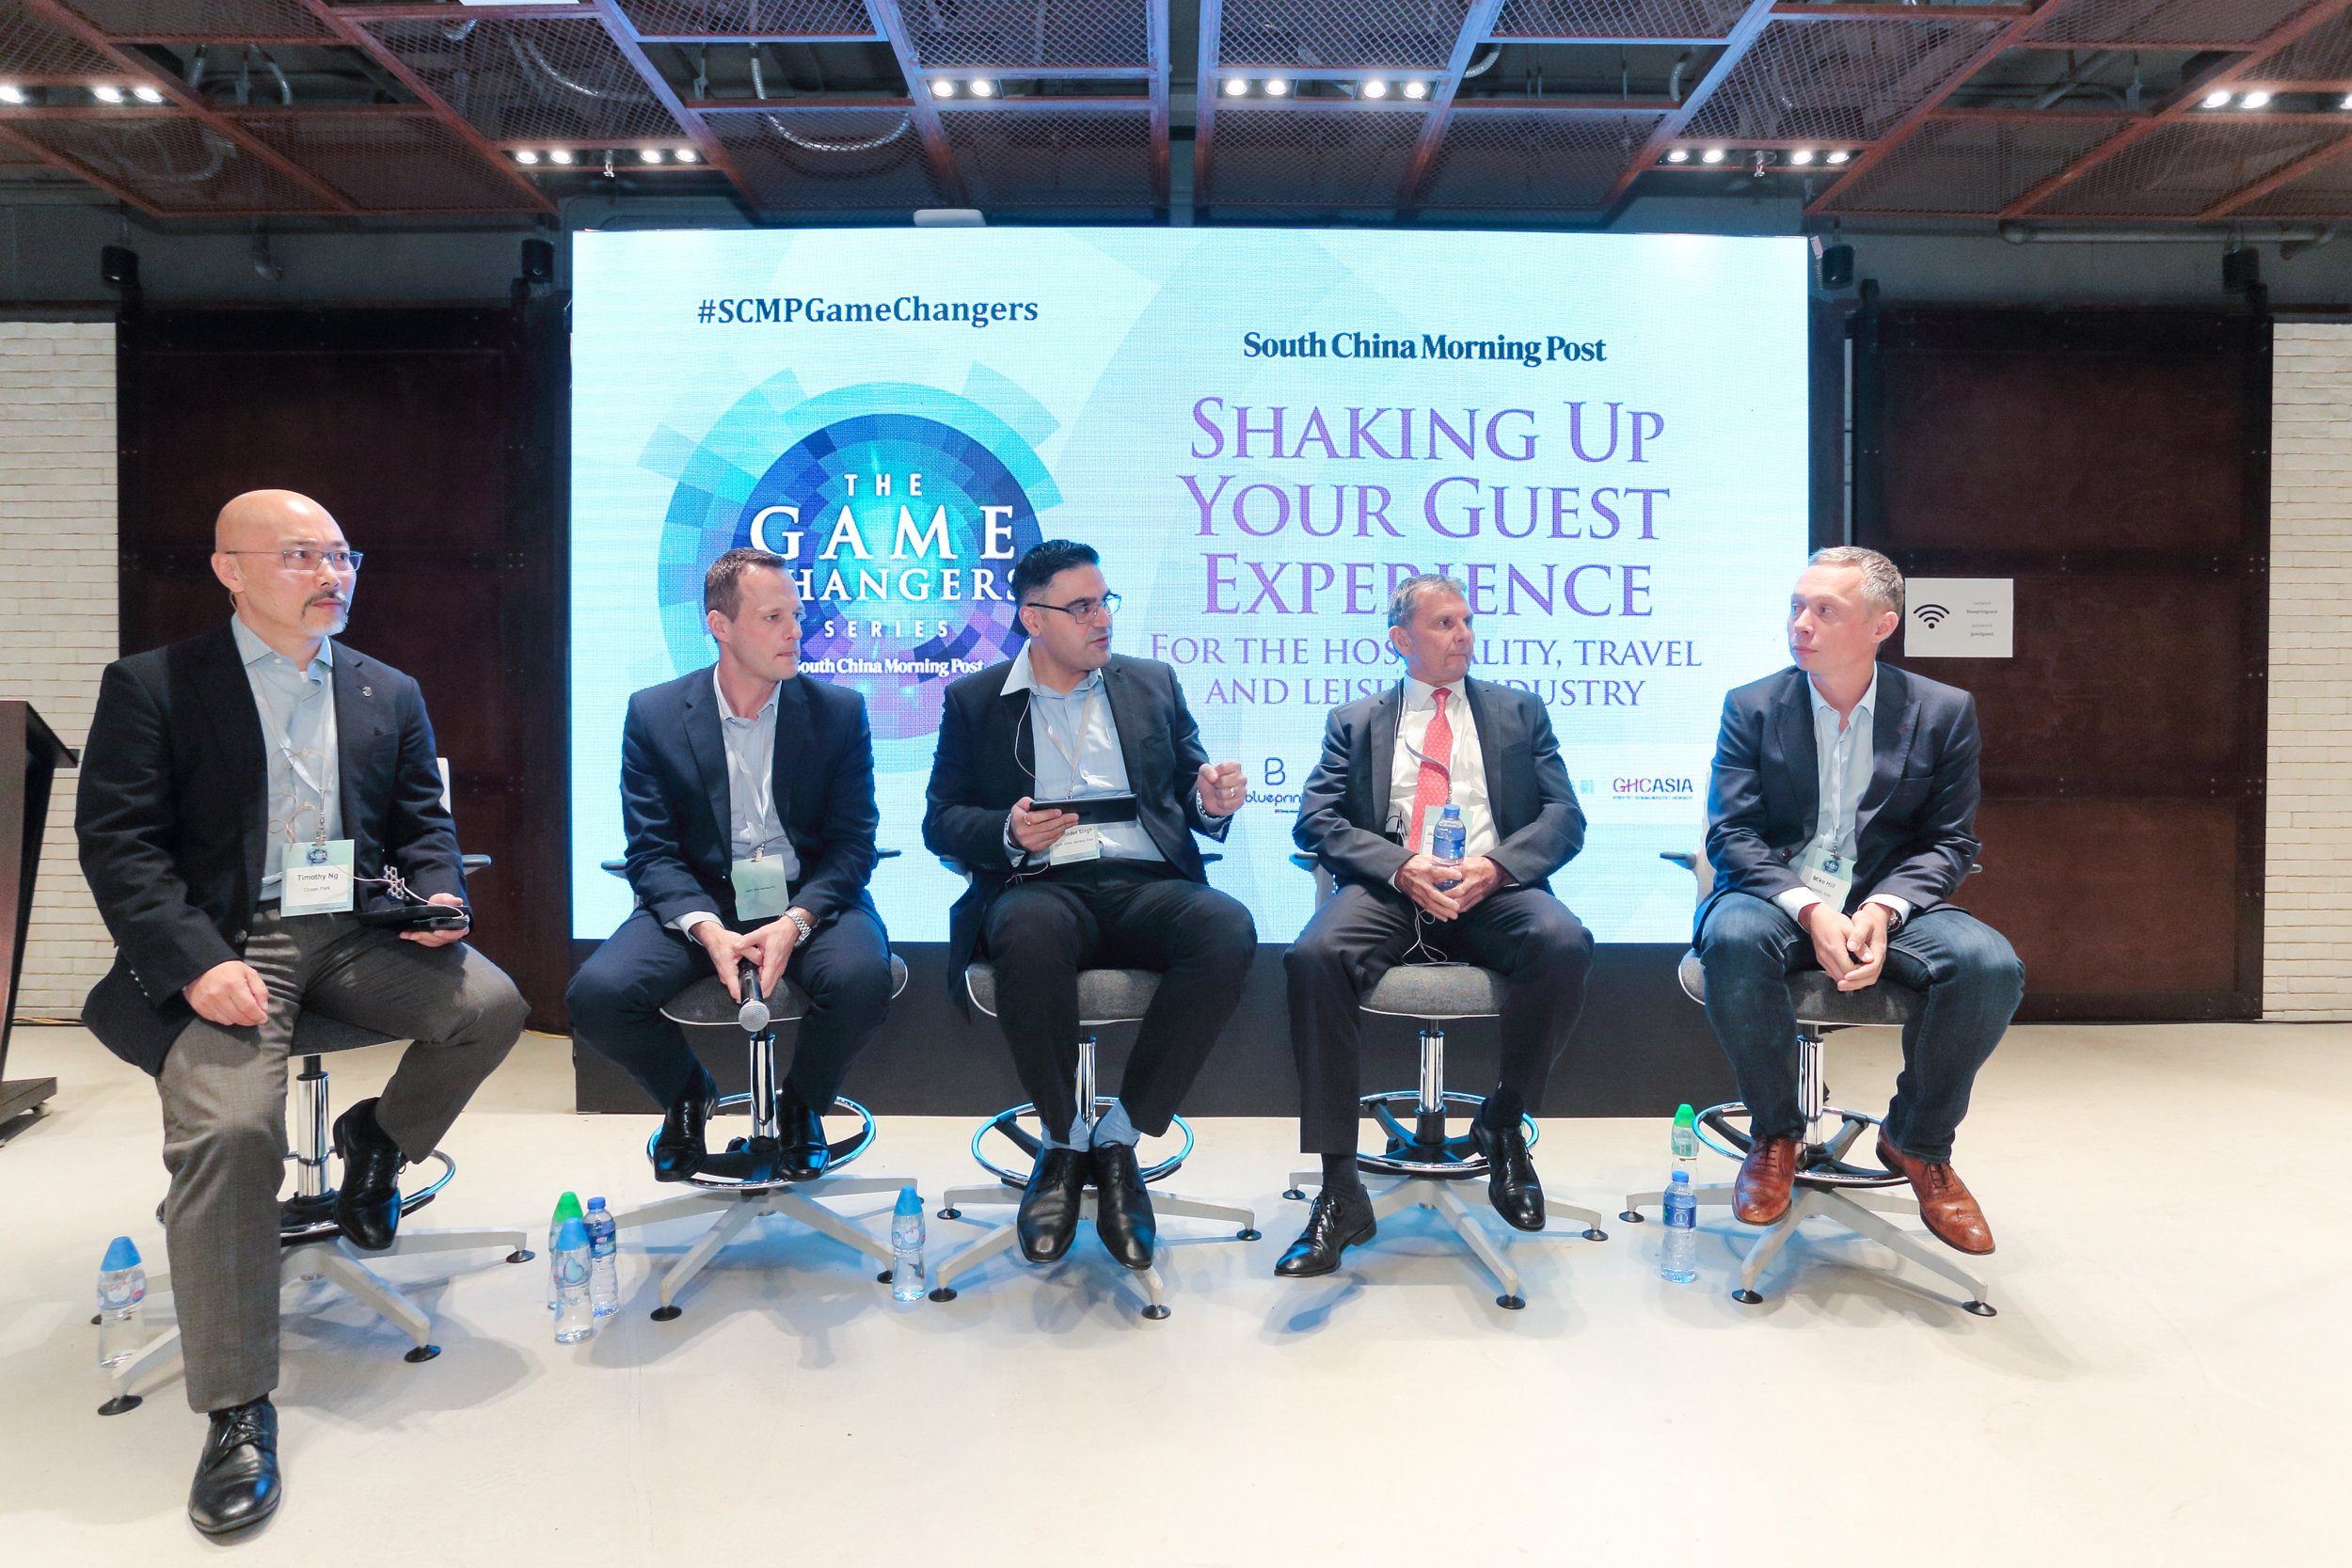 """(From left) Timothy Ng, Executive Director, Operations and Entertainment, Ocean Park Corporation; Chris Birt, General Manager, Service Delivery, Hong Kong Airlines; Harminder Singh, Journalist, SCMP; Jean Michel Offe, Executive Vice President, Food and Beverages, Shangri-La Hotels and Resorts; Mike Hill, CEO, Magnetic Asia sharing insights on """"What will the travel, hospitality and leisure sector look like in 2030?"""""""